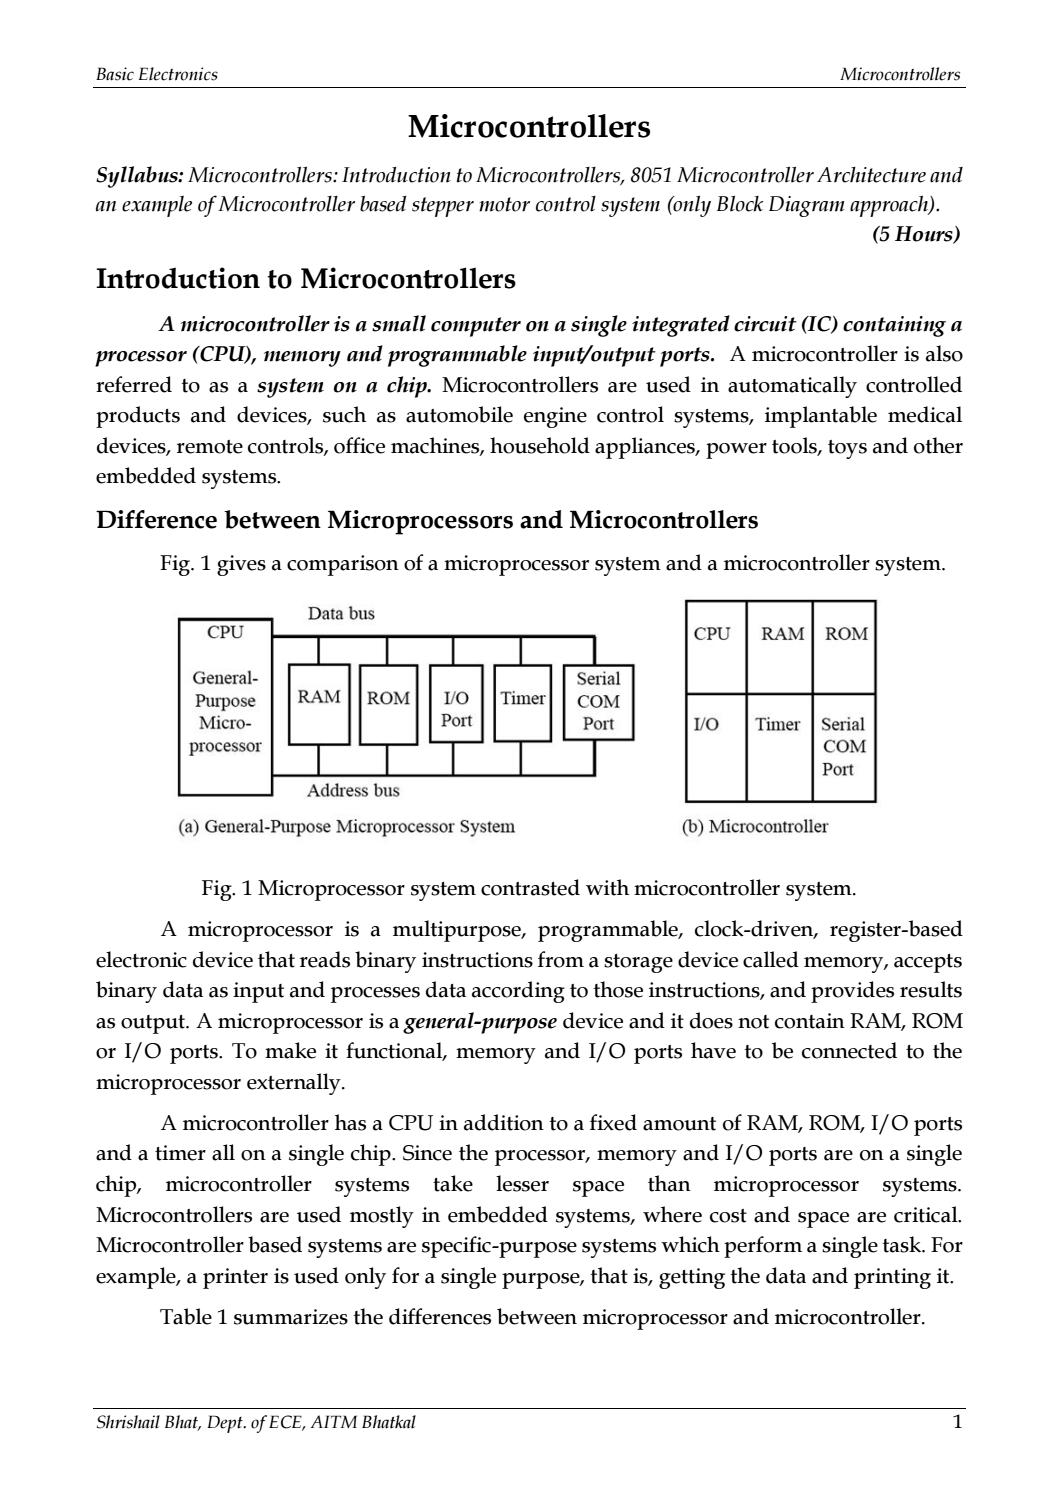 Basic Electronics Microcontrollers Module 4 By Shrishail Bhat 8 Bit Microcontroller Block Diagram Issuu